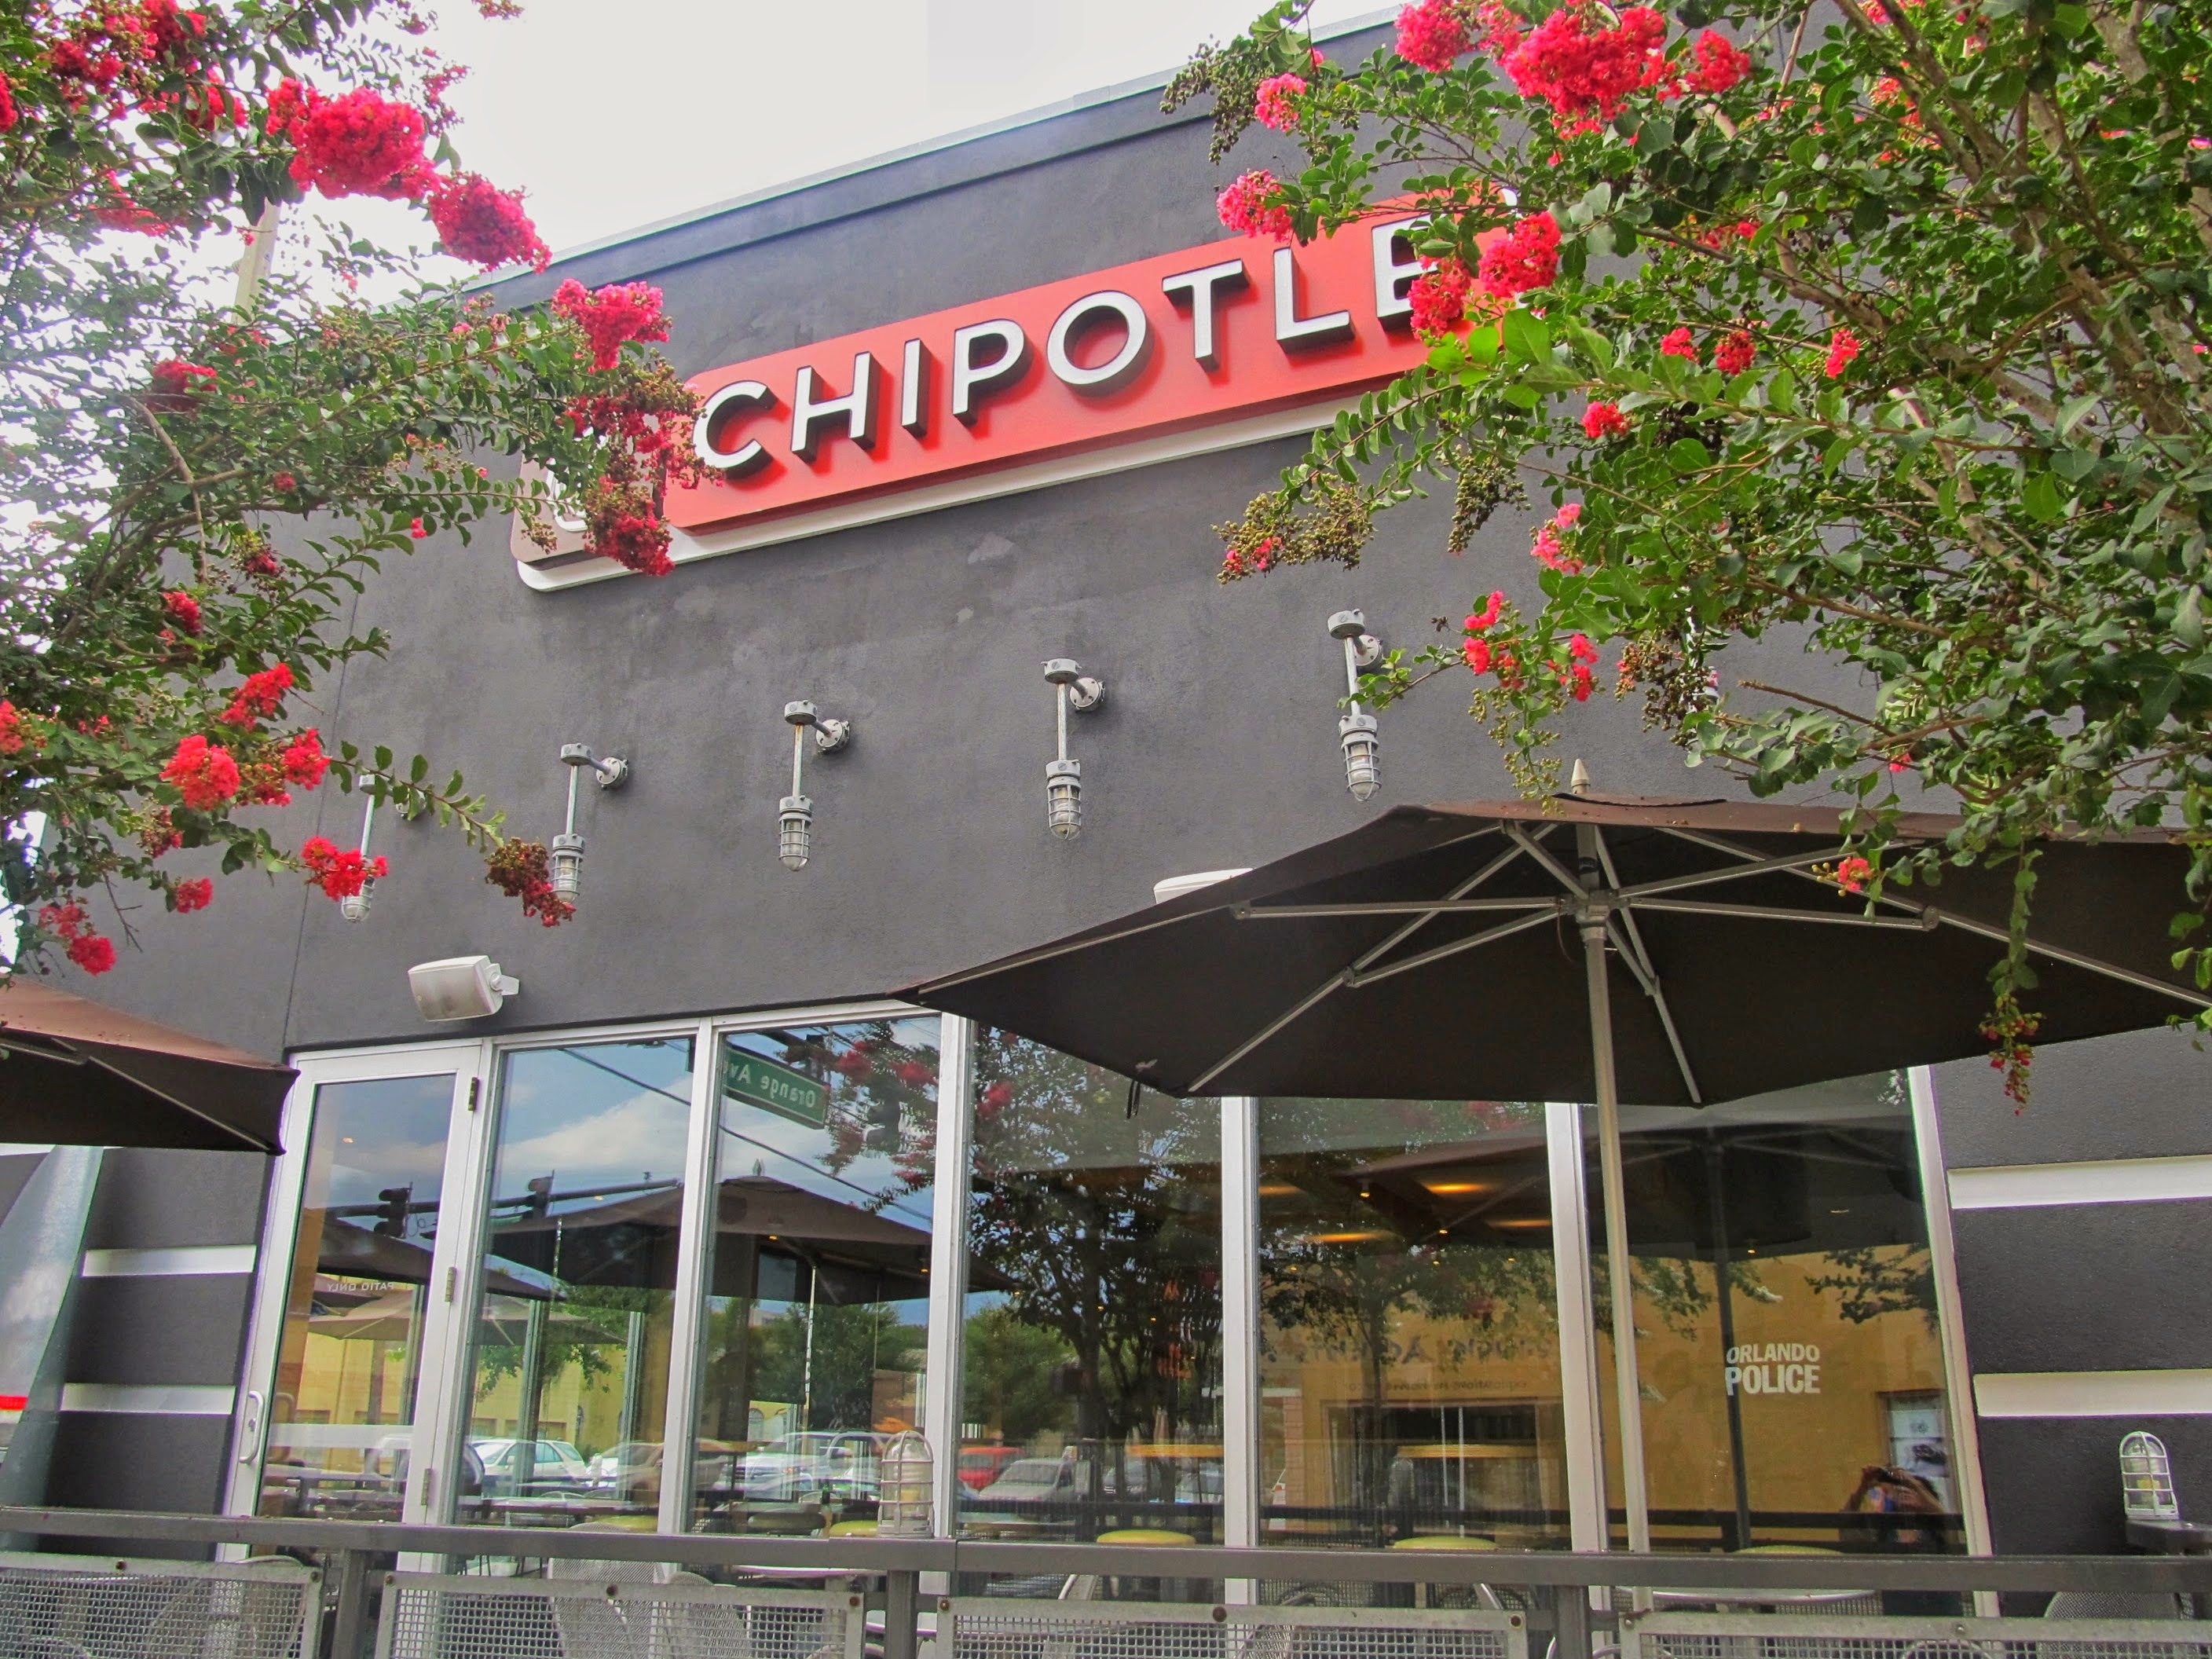 Chipotle agrees to pay $25 million fine related to foodborne illness outbreaks